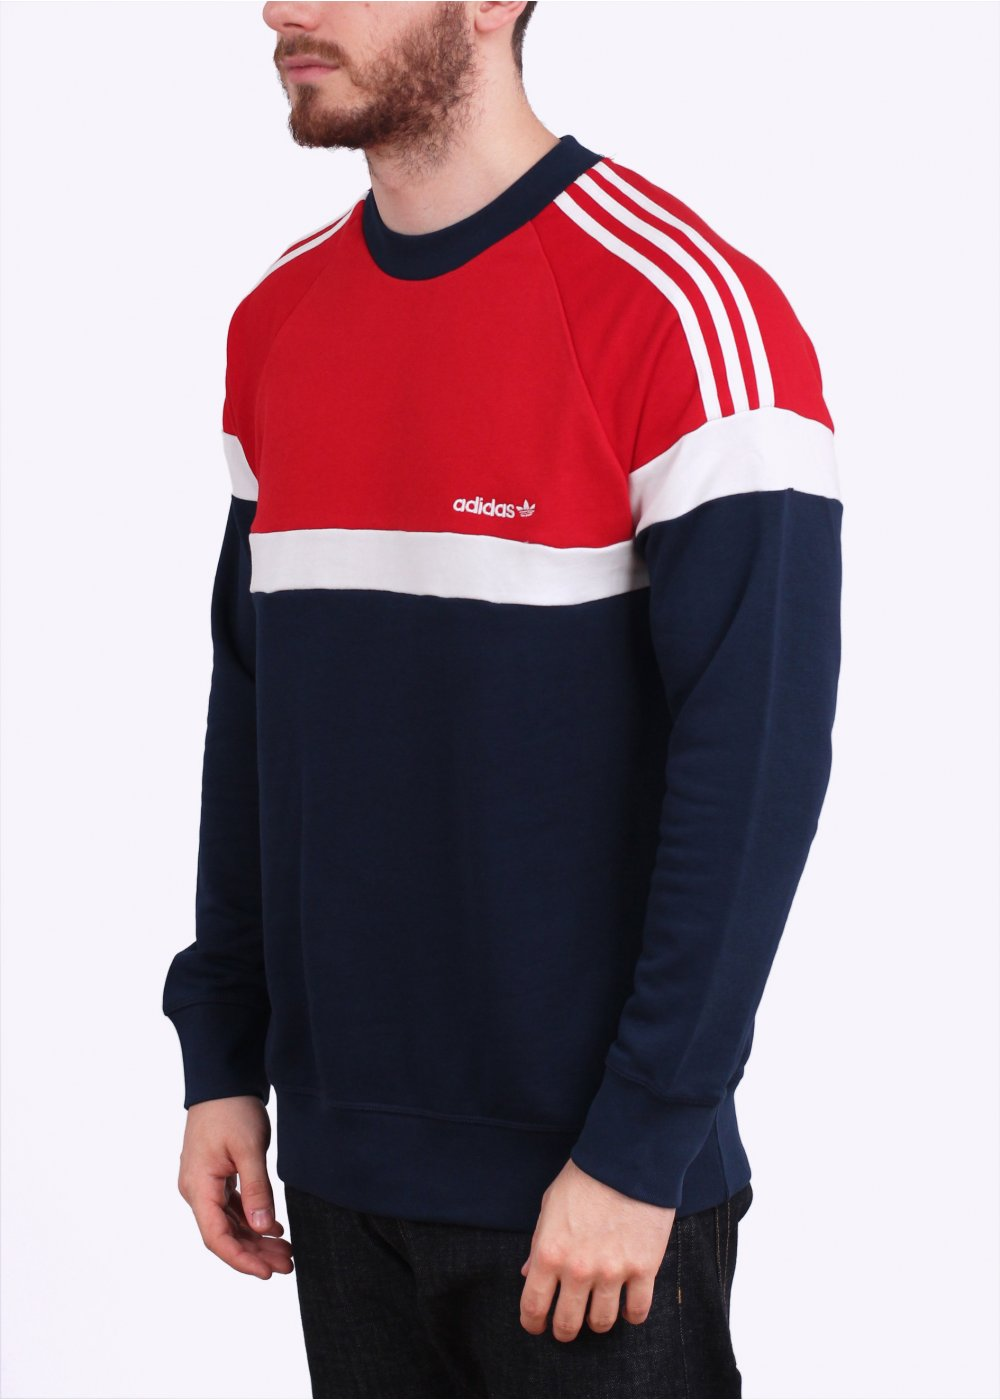 adidas originals itasca crew sweatshirt navy. Black Bedroom Furniture Sets. Home Design Ideas